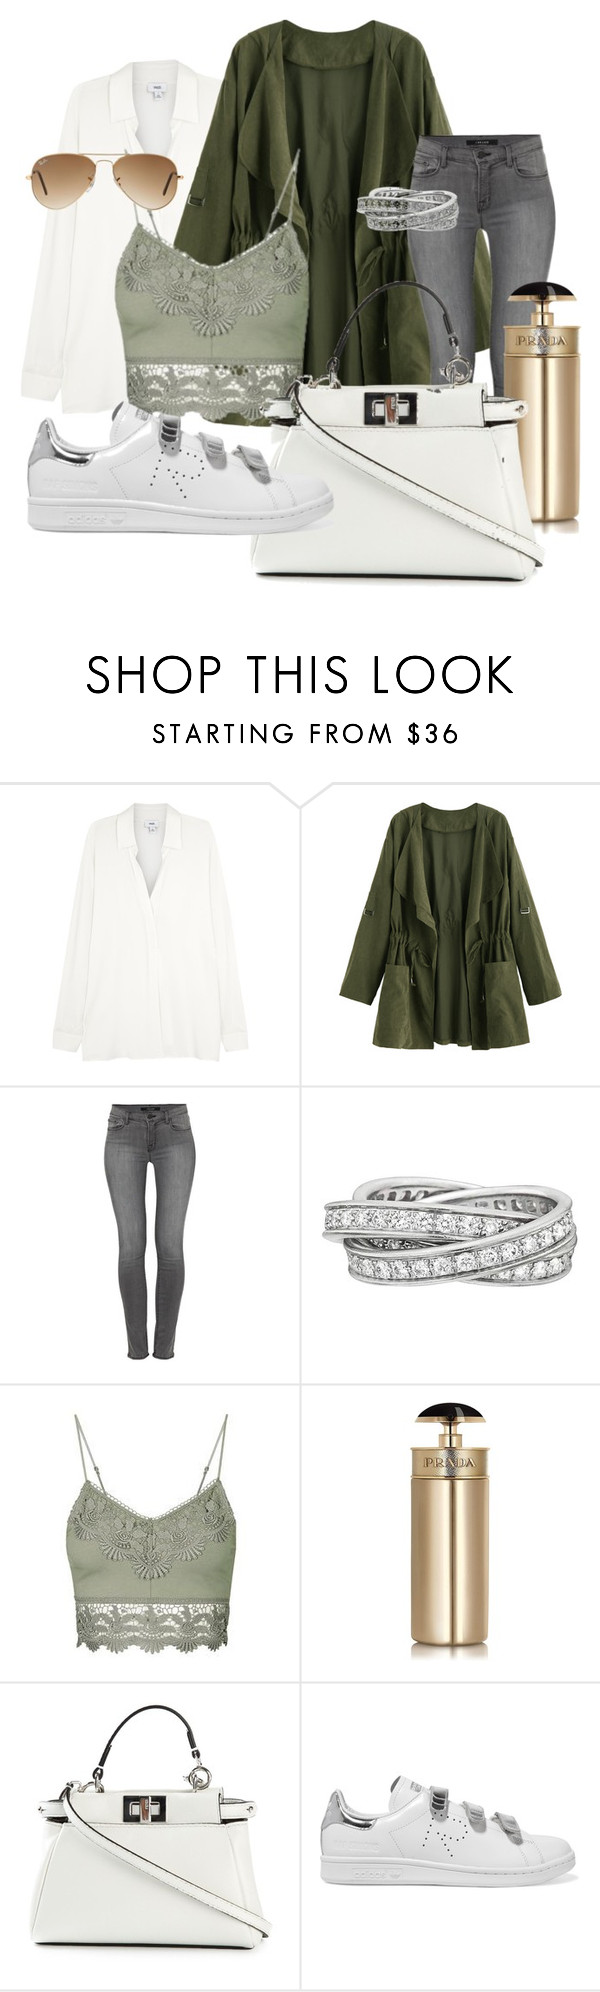 """Fall X"" by beatricechan on Polyvore featuring Vince, J Brand, Cartier, Topshop, Prada, Fendi, adidas Originals and Ray-Ban"